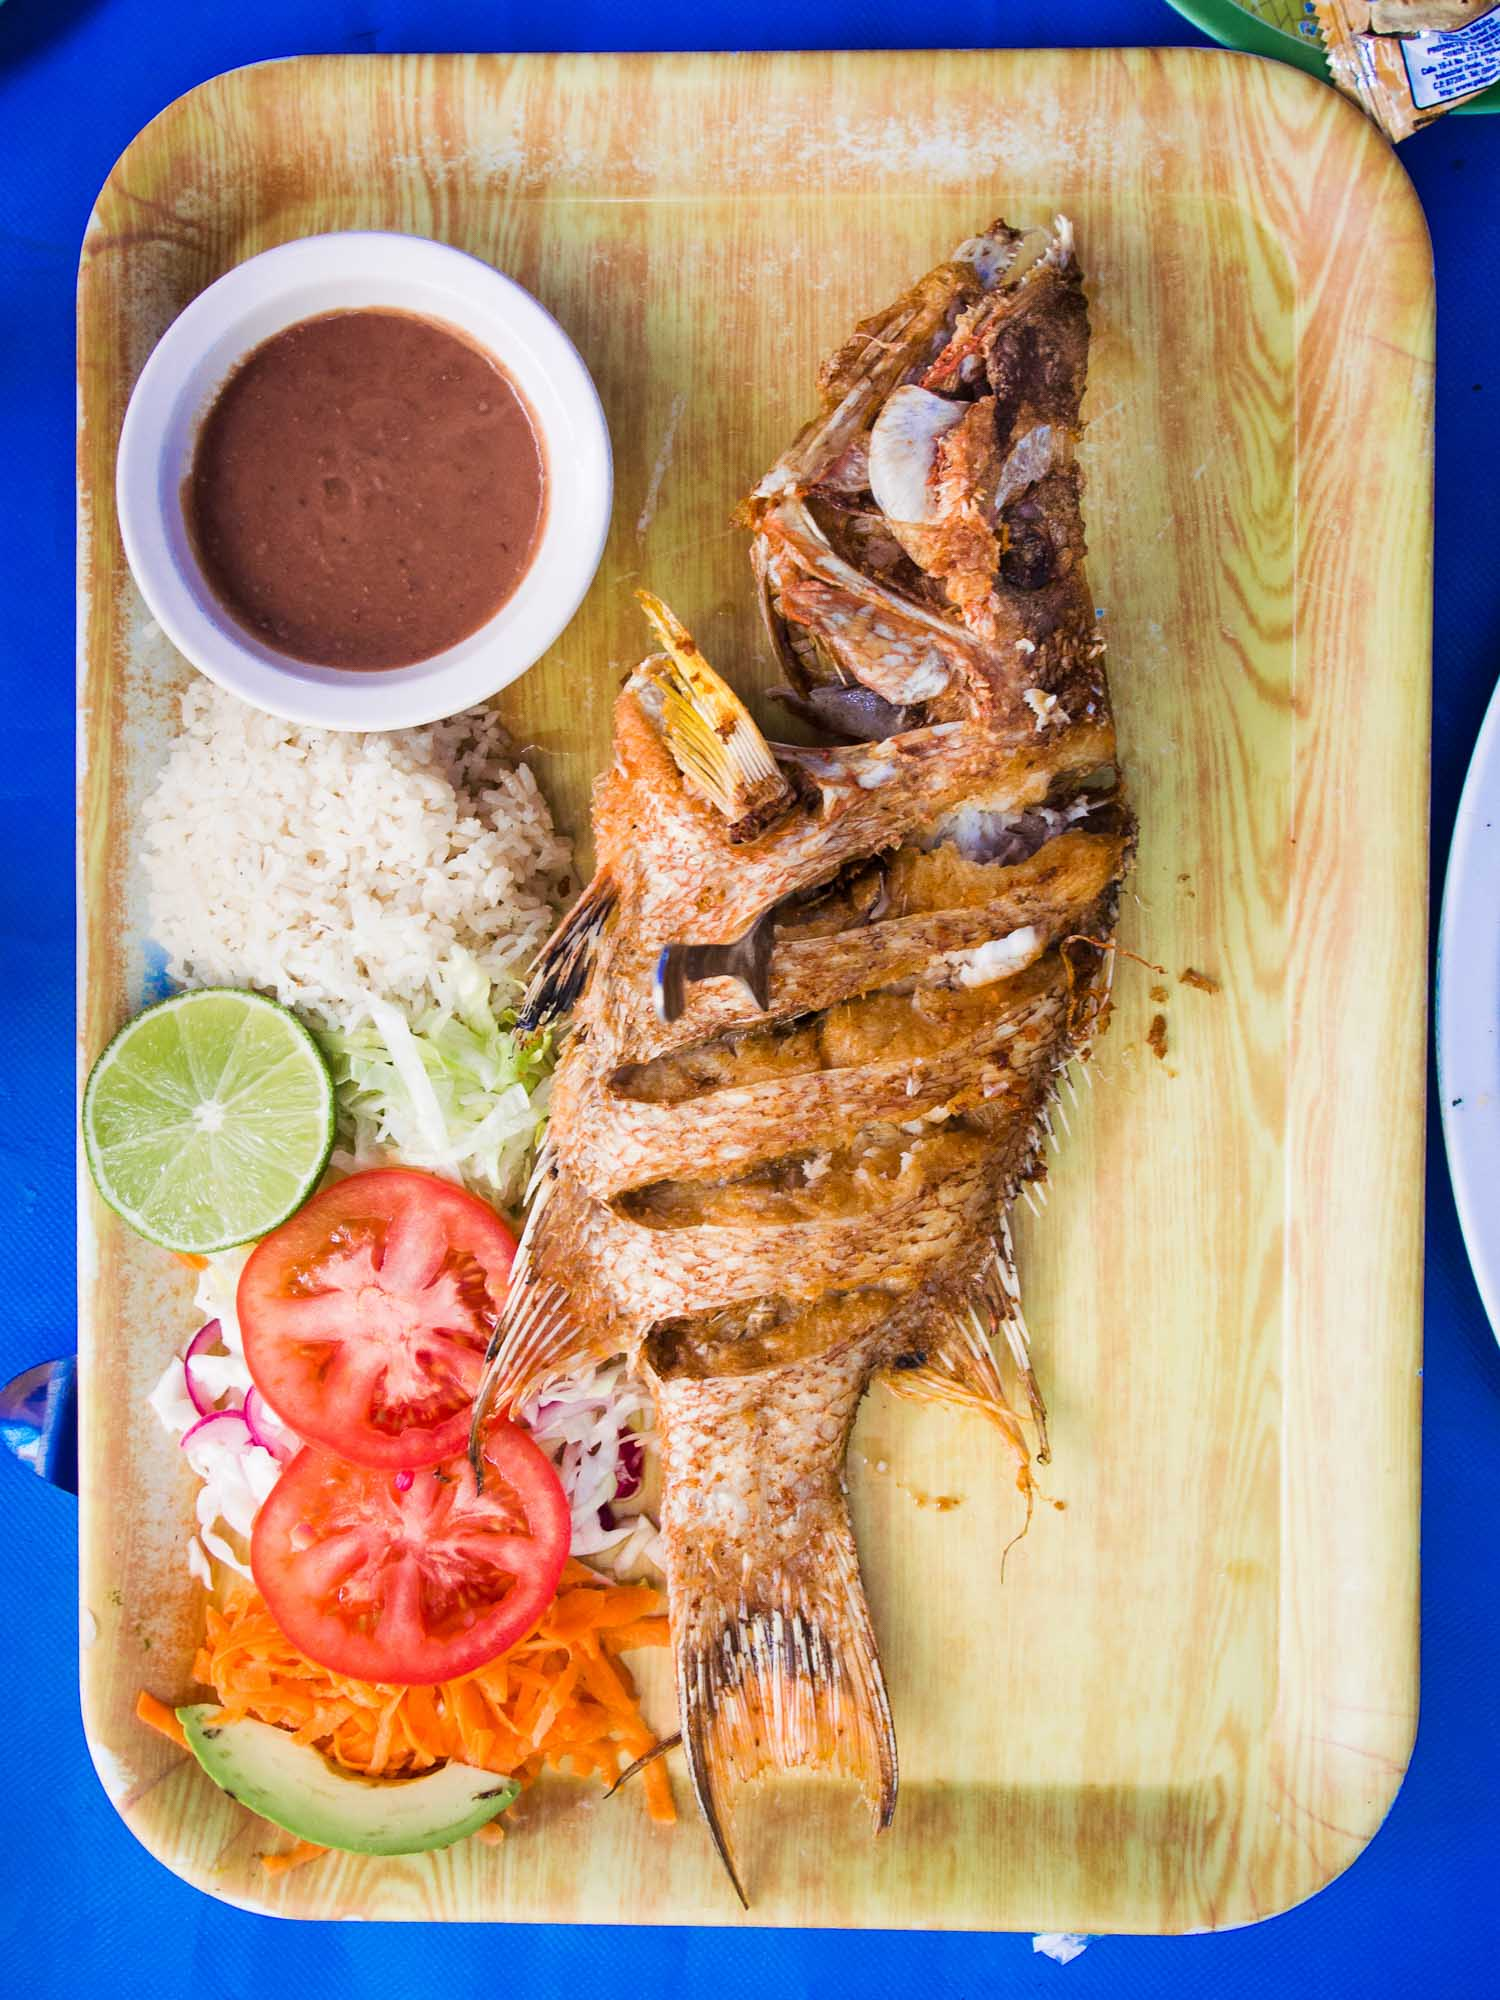 Grilled fish at El Pirata restaurant in Playa del Carmen